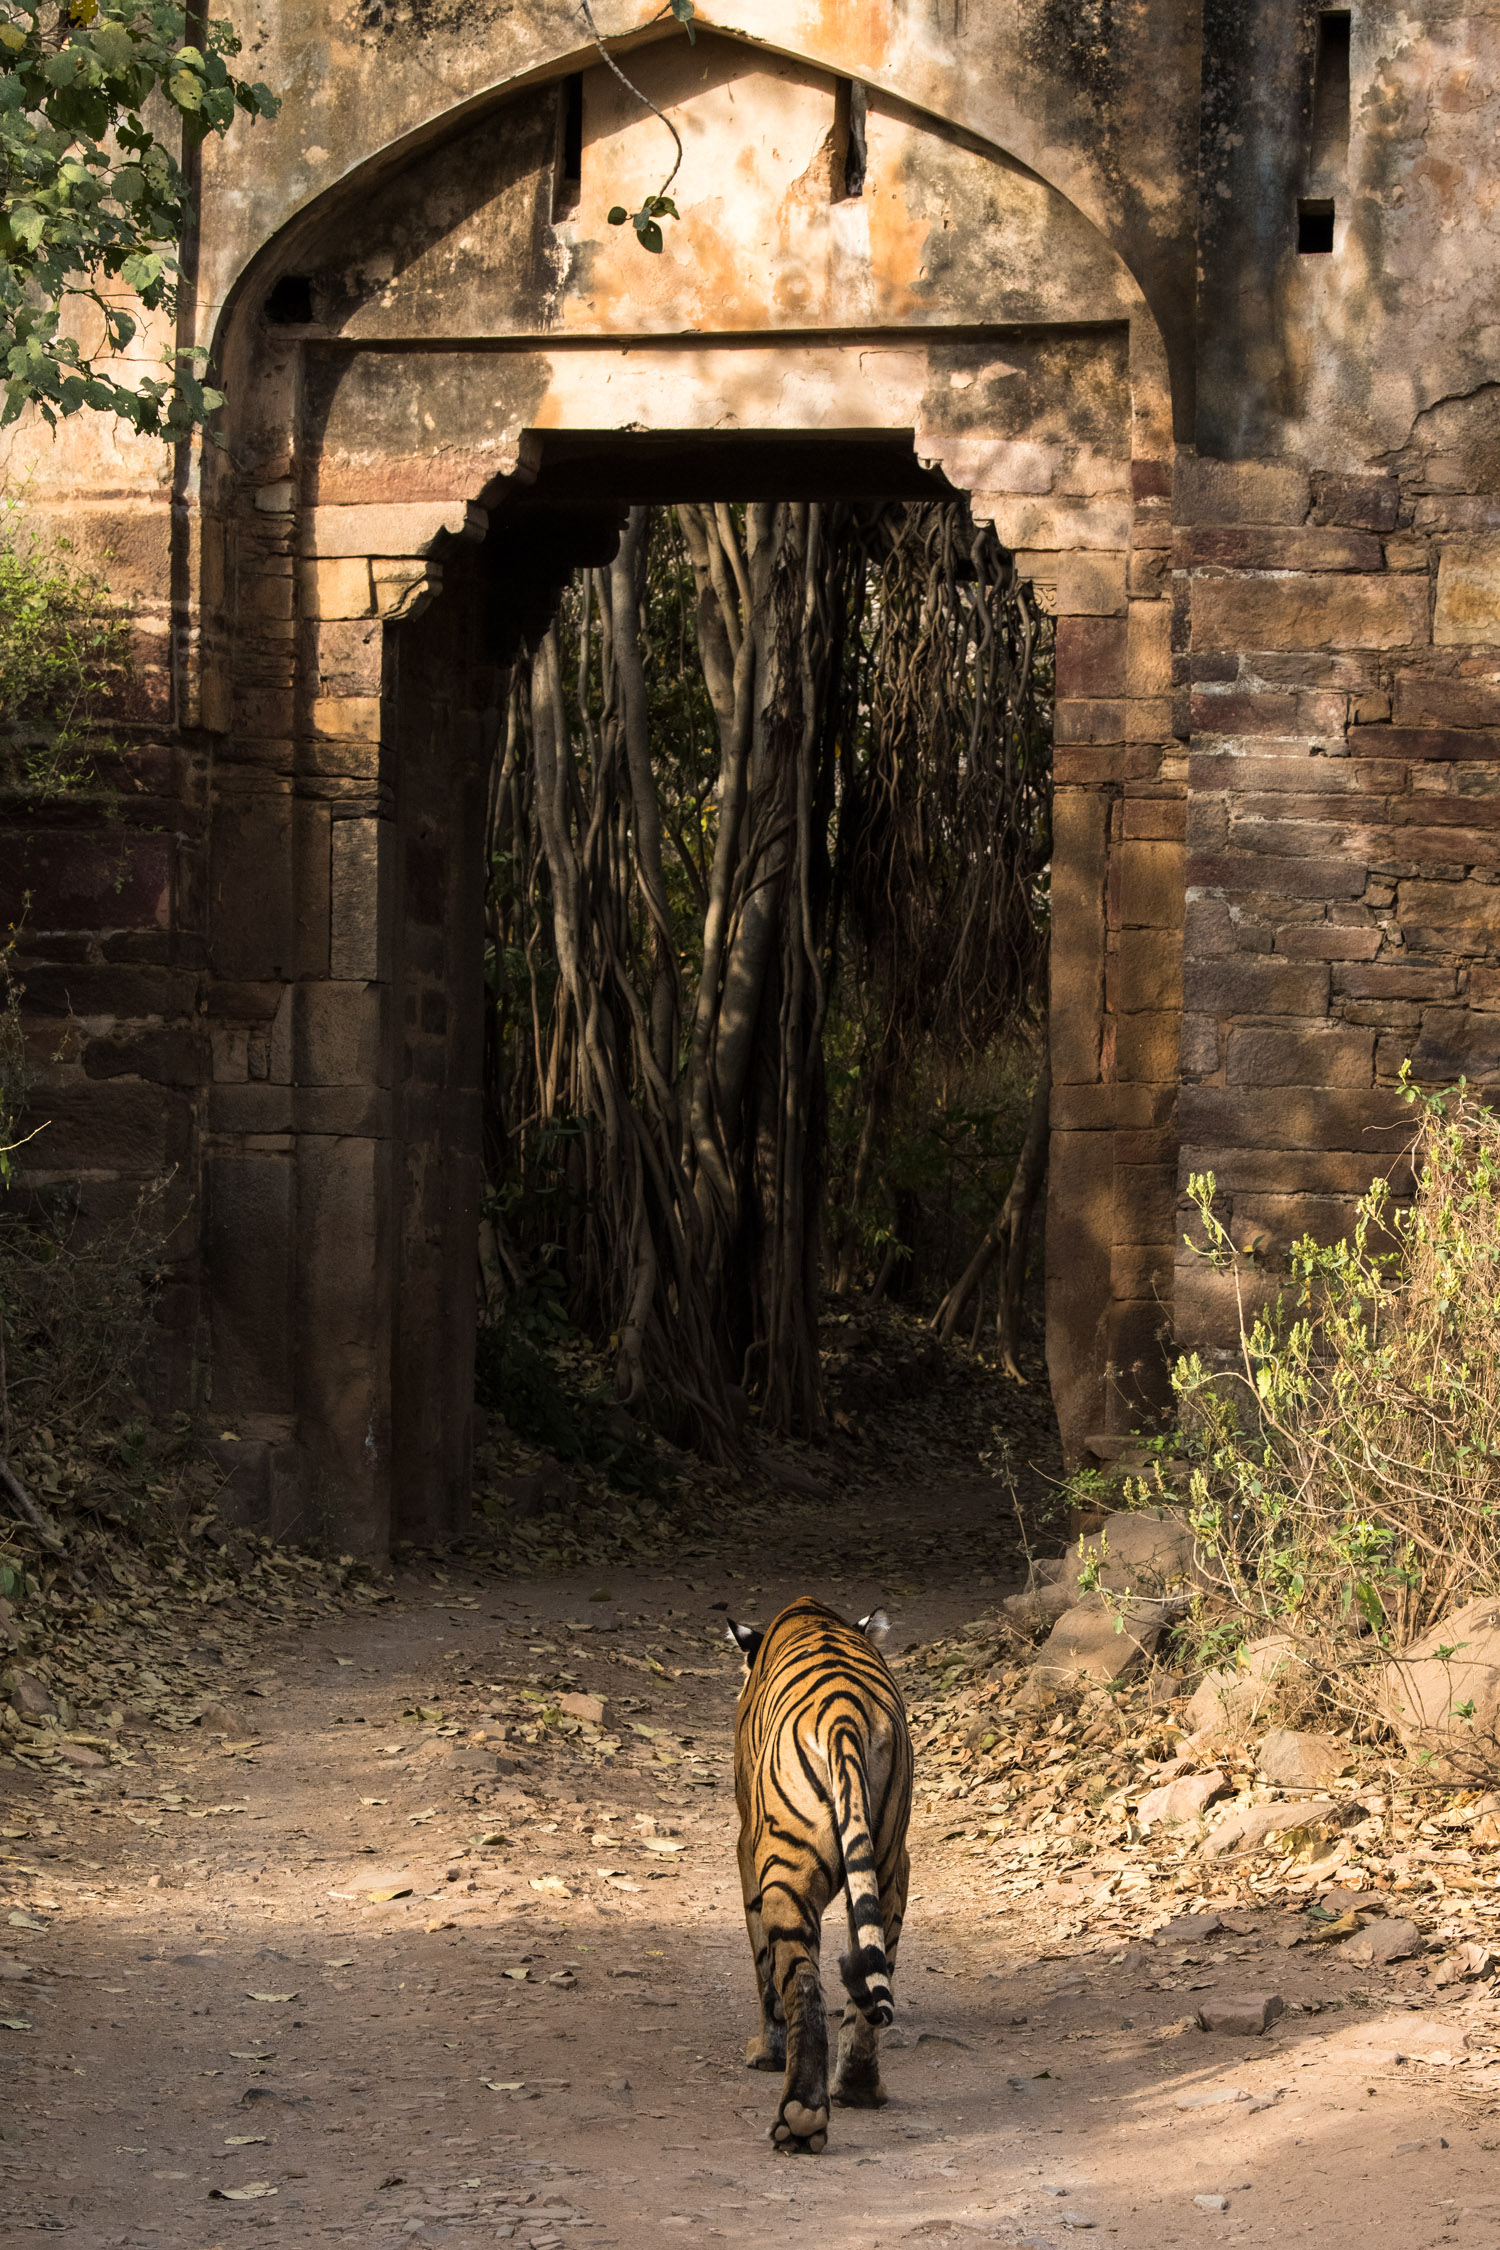 Bengal tigress walking towards historic stone archway, Ranthambhore National Park, Rajasthan, India